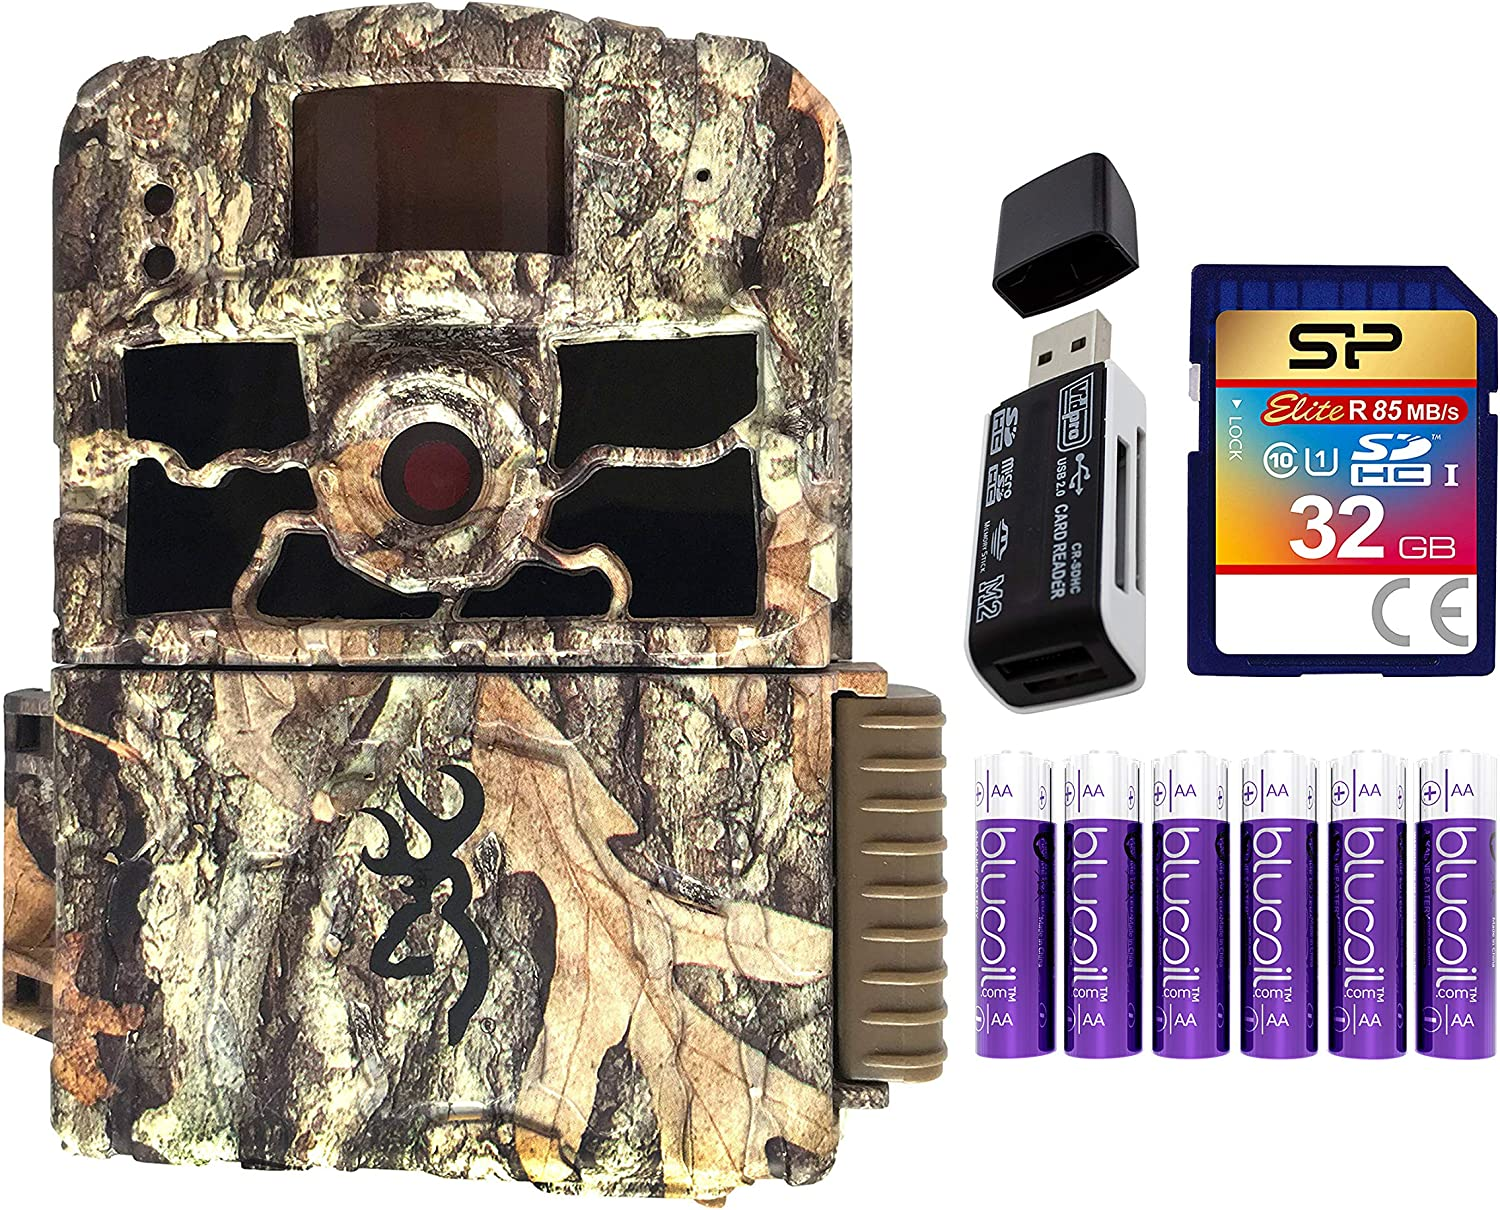 Browning BTC-6HD-MAX Dark Ops HD MAX Trail Camera with Smart IR Video Recording Bundle with Blucoil 6 AA Batteries, 32GB SDHC Memory Card, and USB 2.0 Card Reader